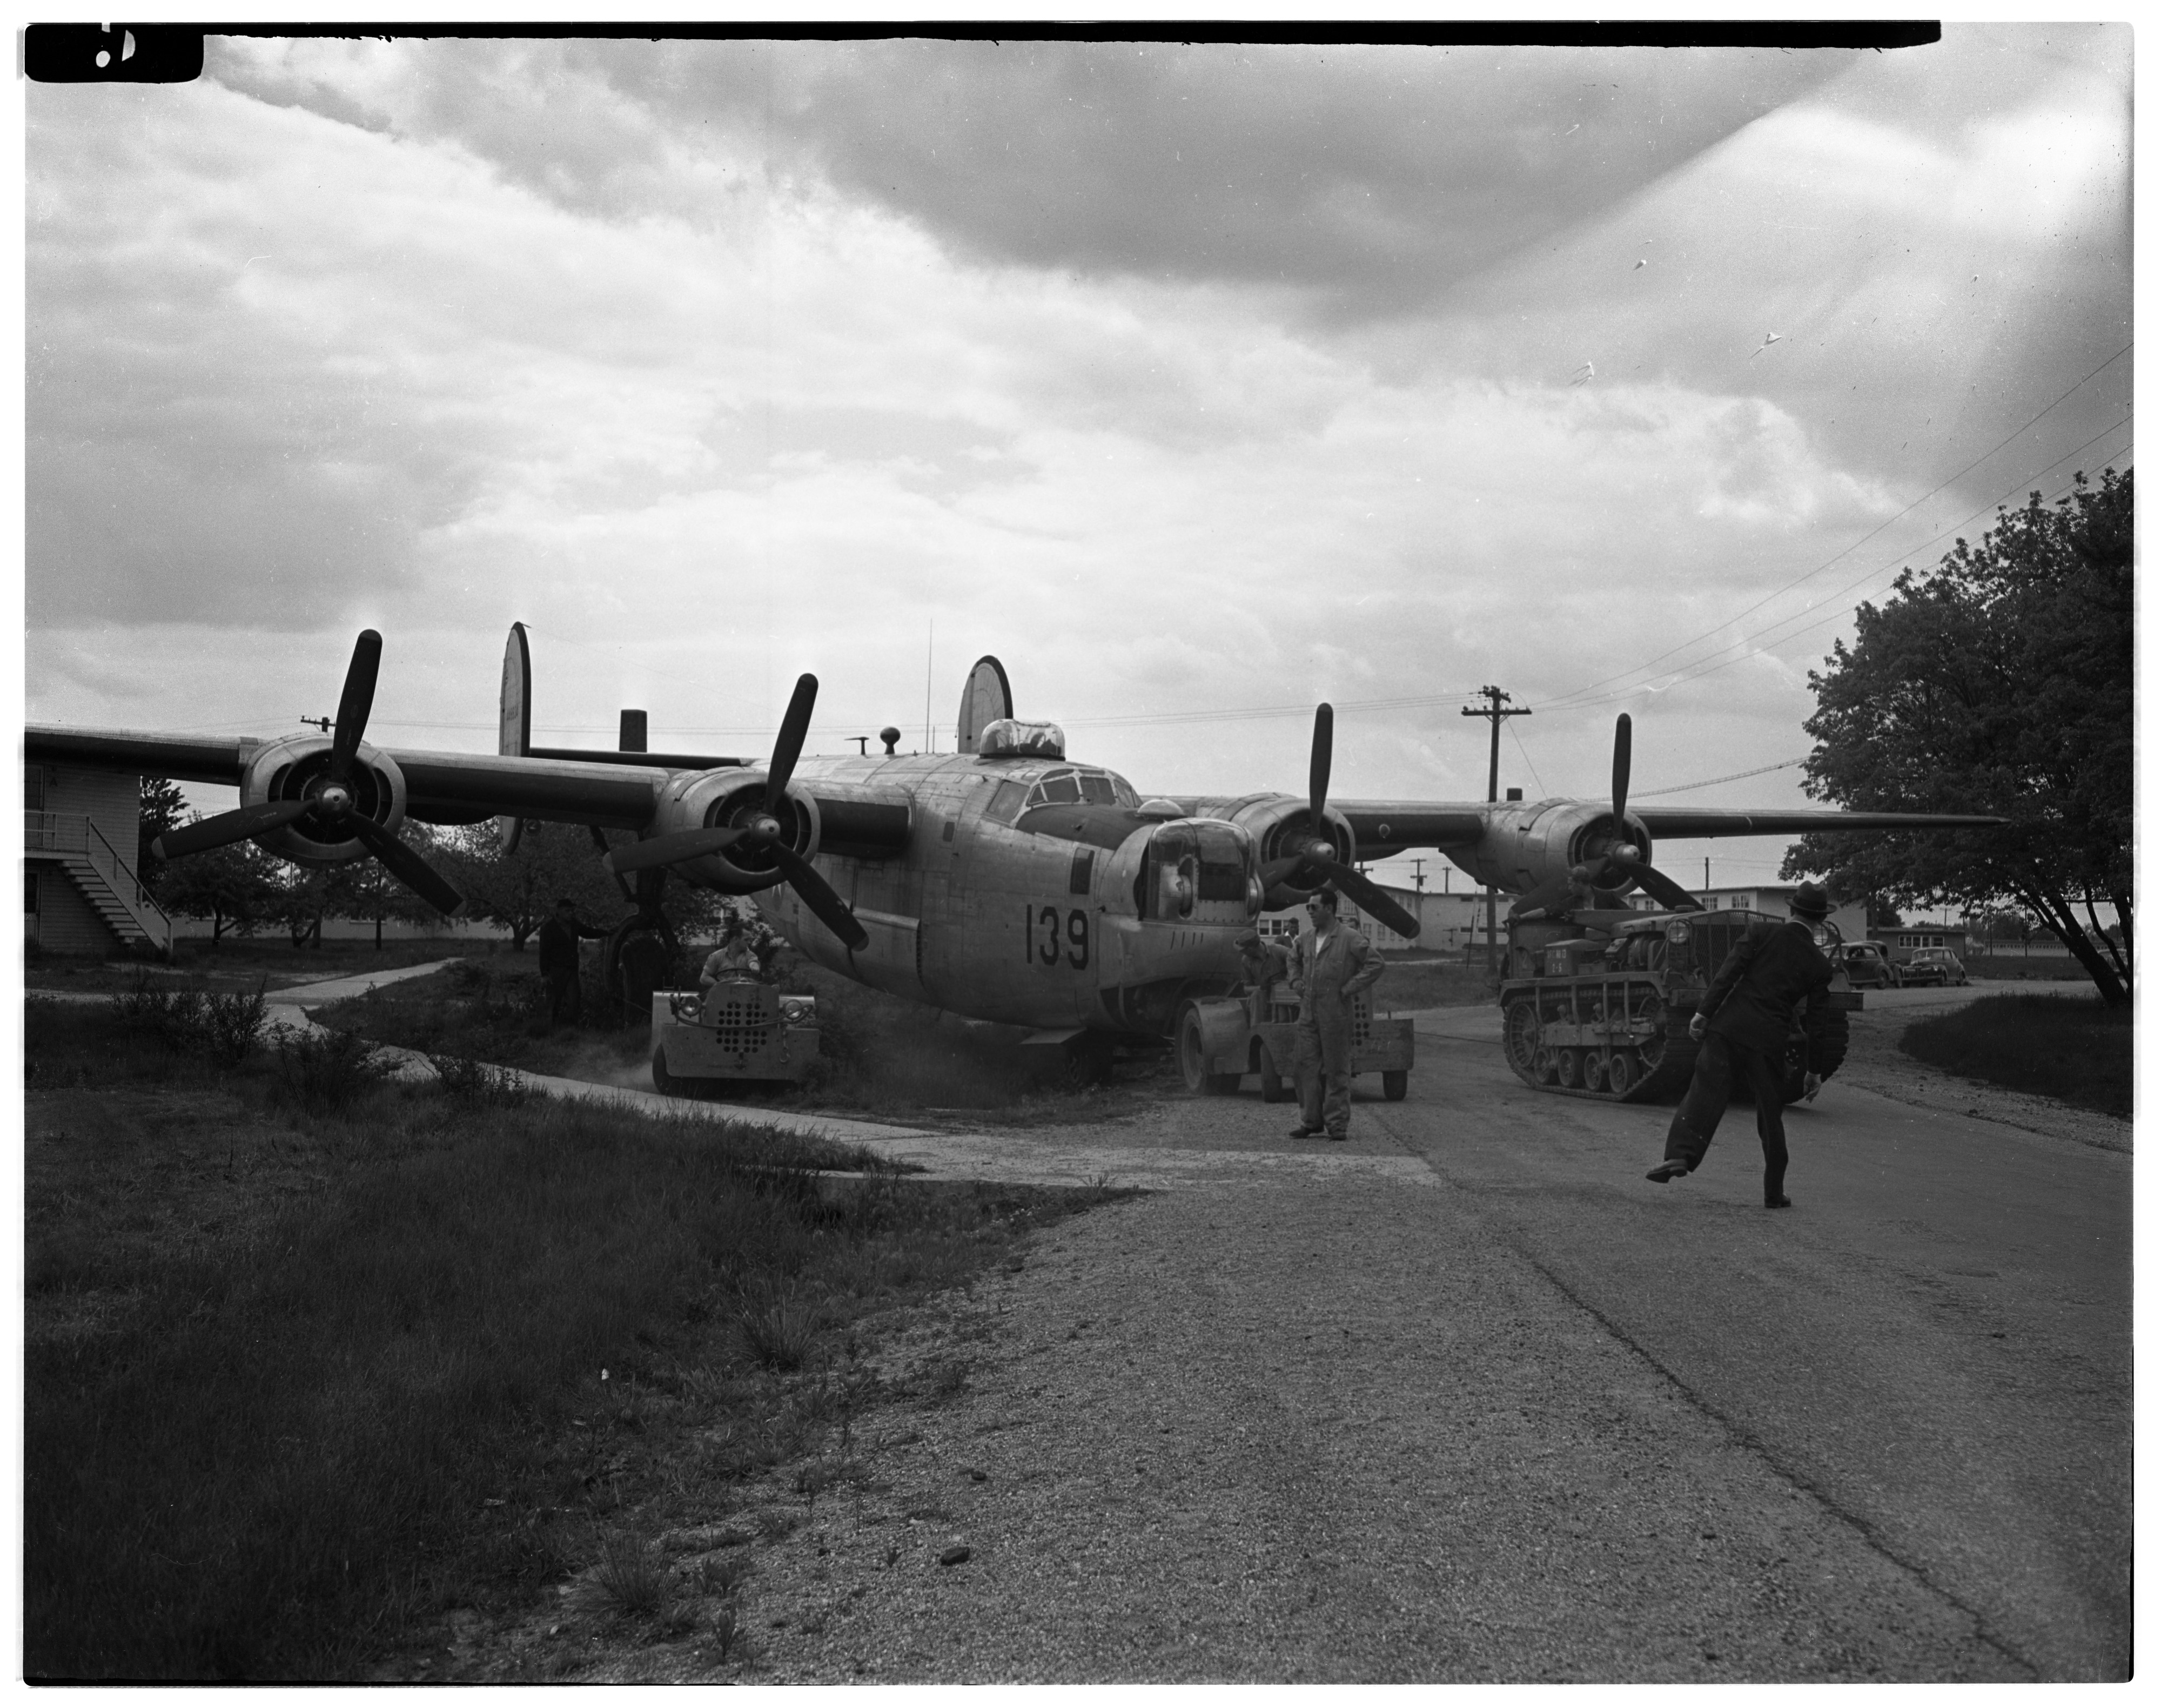 B-24 Bomber #139 hauled through streets of Willow Village to serve as war memorial in front of the Edsel B. Ford post of the American Legion at 2094 E. Michigan Avenue, Ypsilanti, May 1946 image